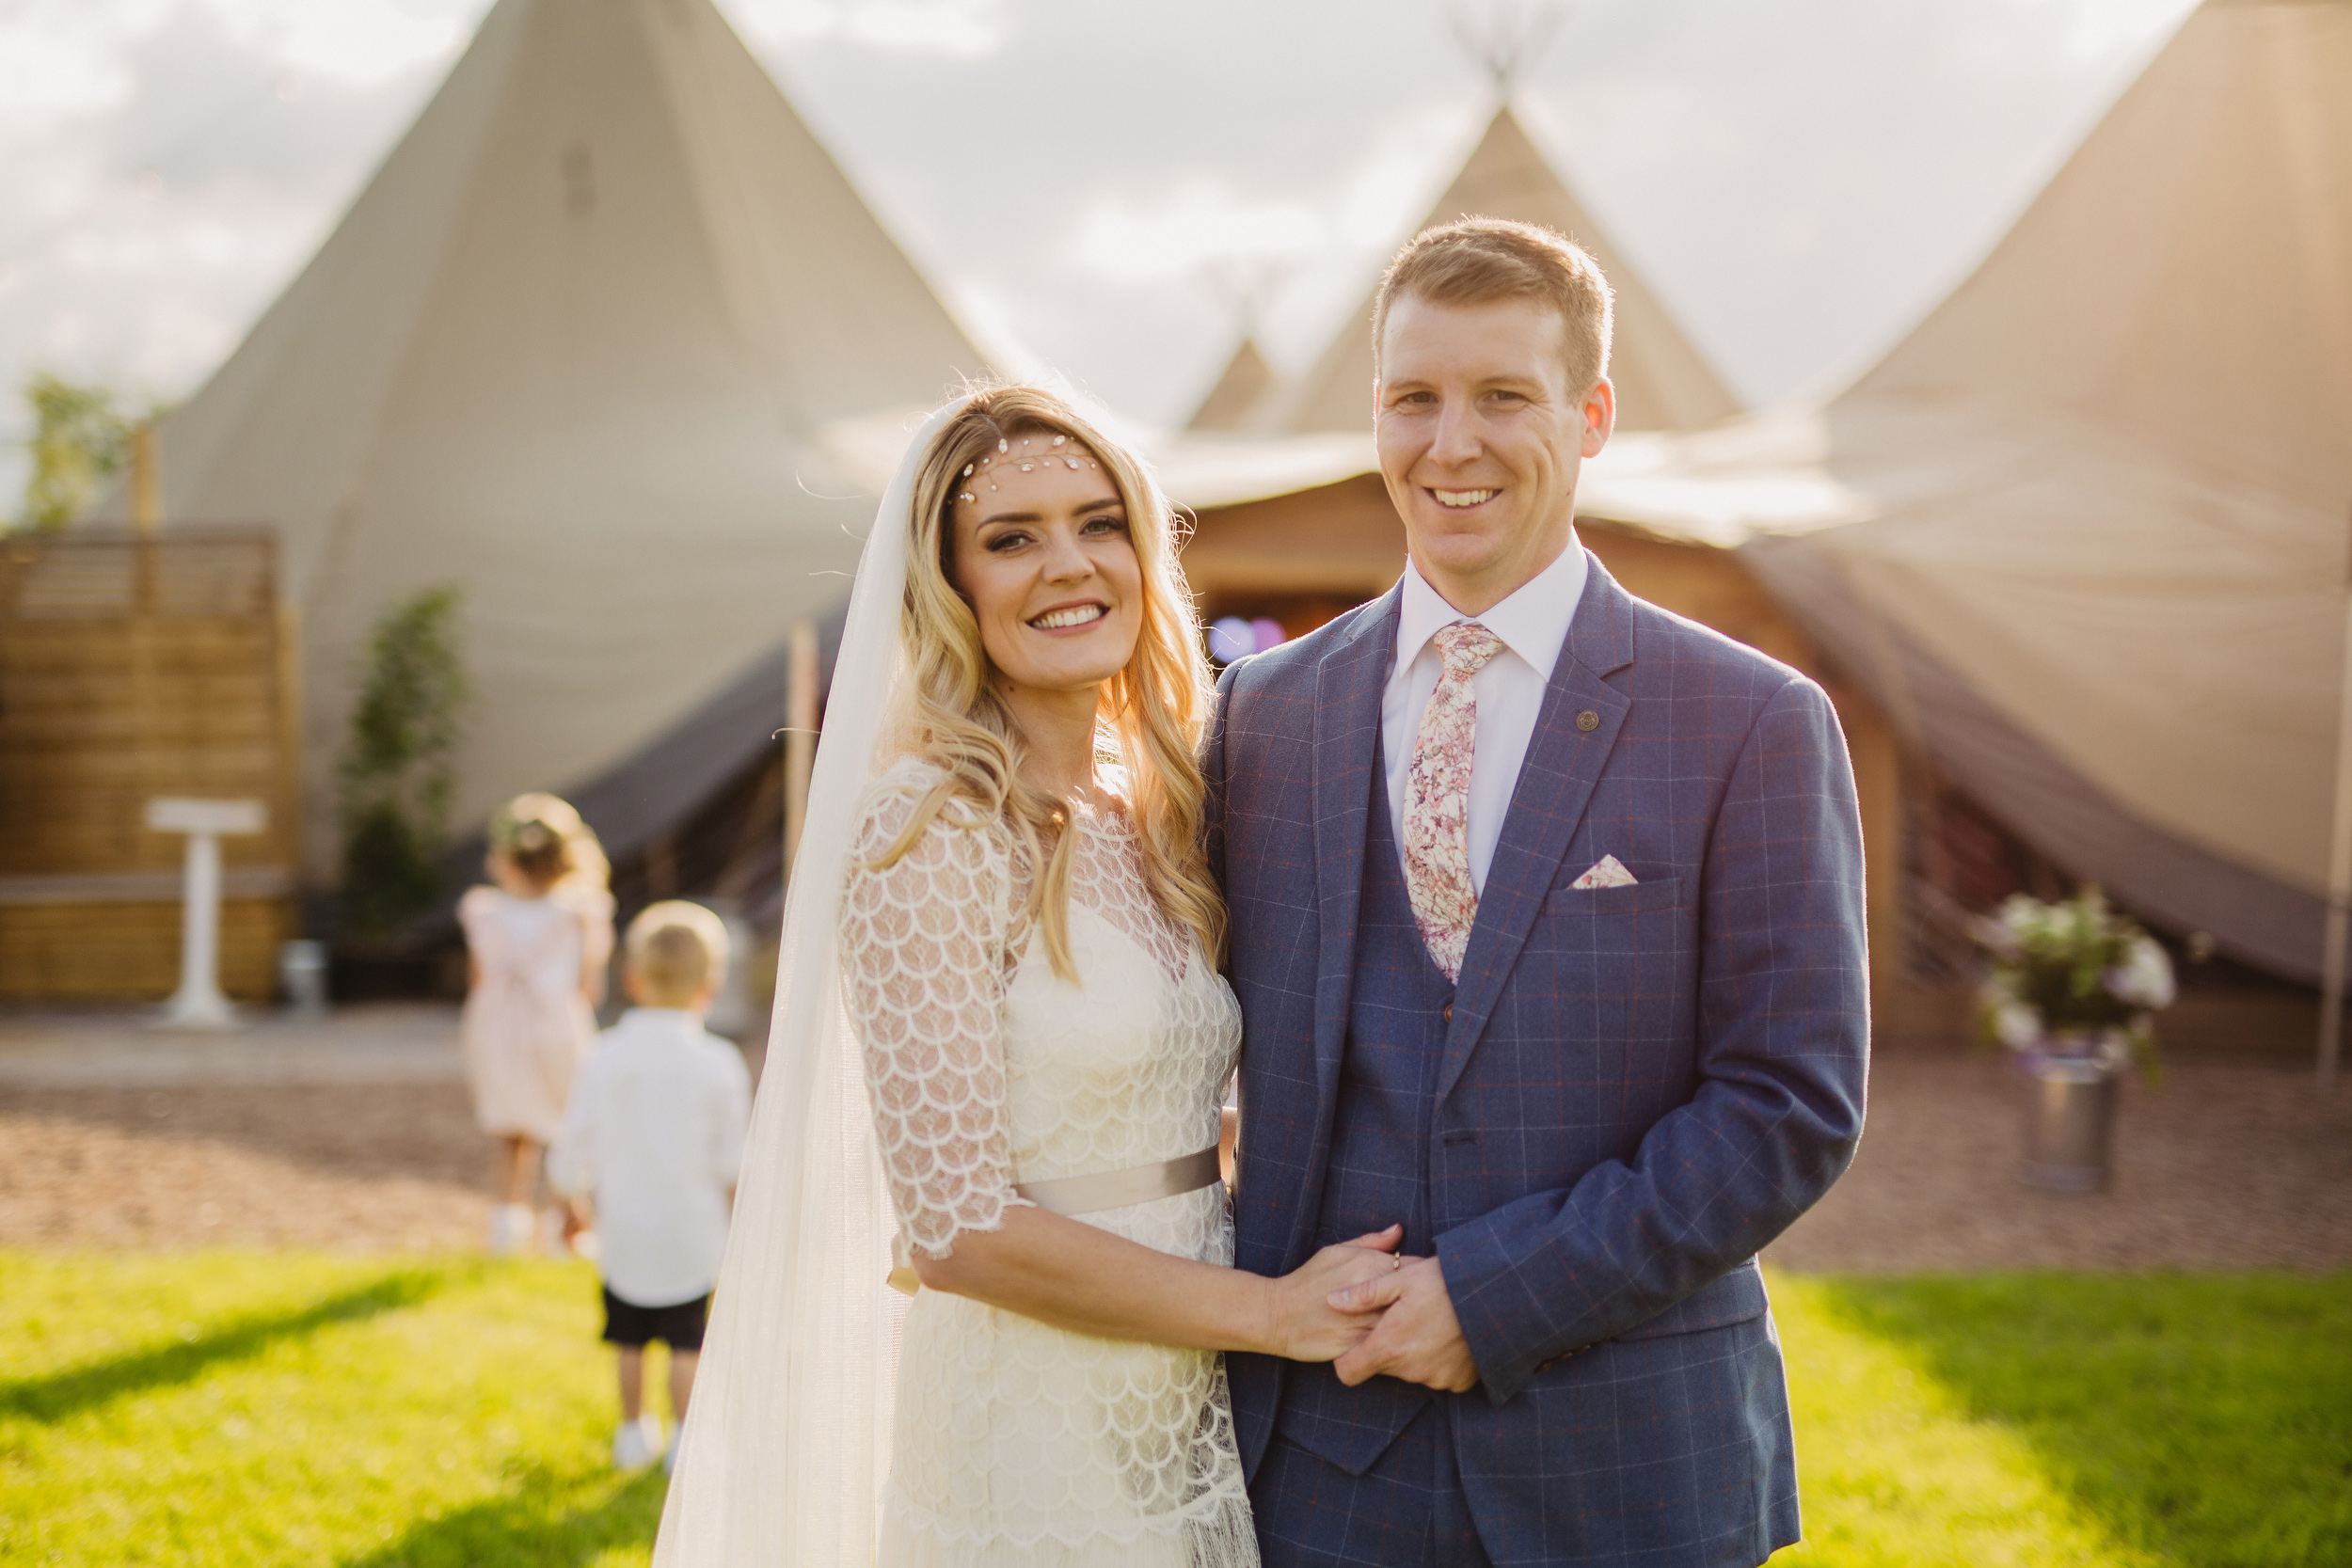 Gemma-Bohemian-Outdoor-Tipi-Wedding-Laid-Back-Relaxed-Family-Wedding-Kate-Beaumont-Astilbe-by-S6-Photography-Sheffield-43.jpg